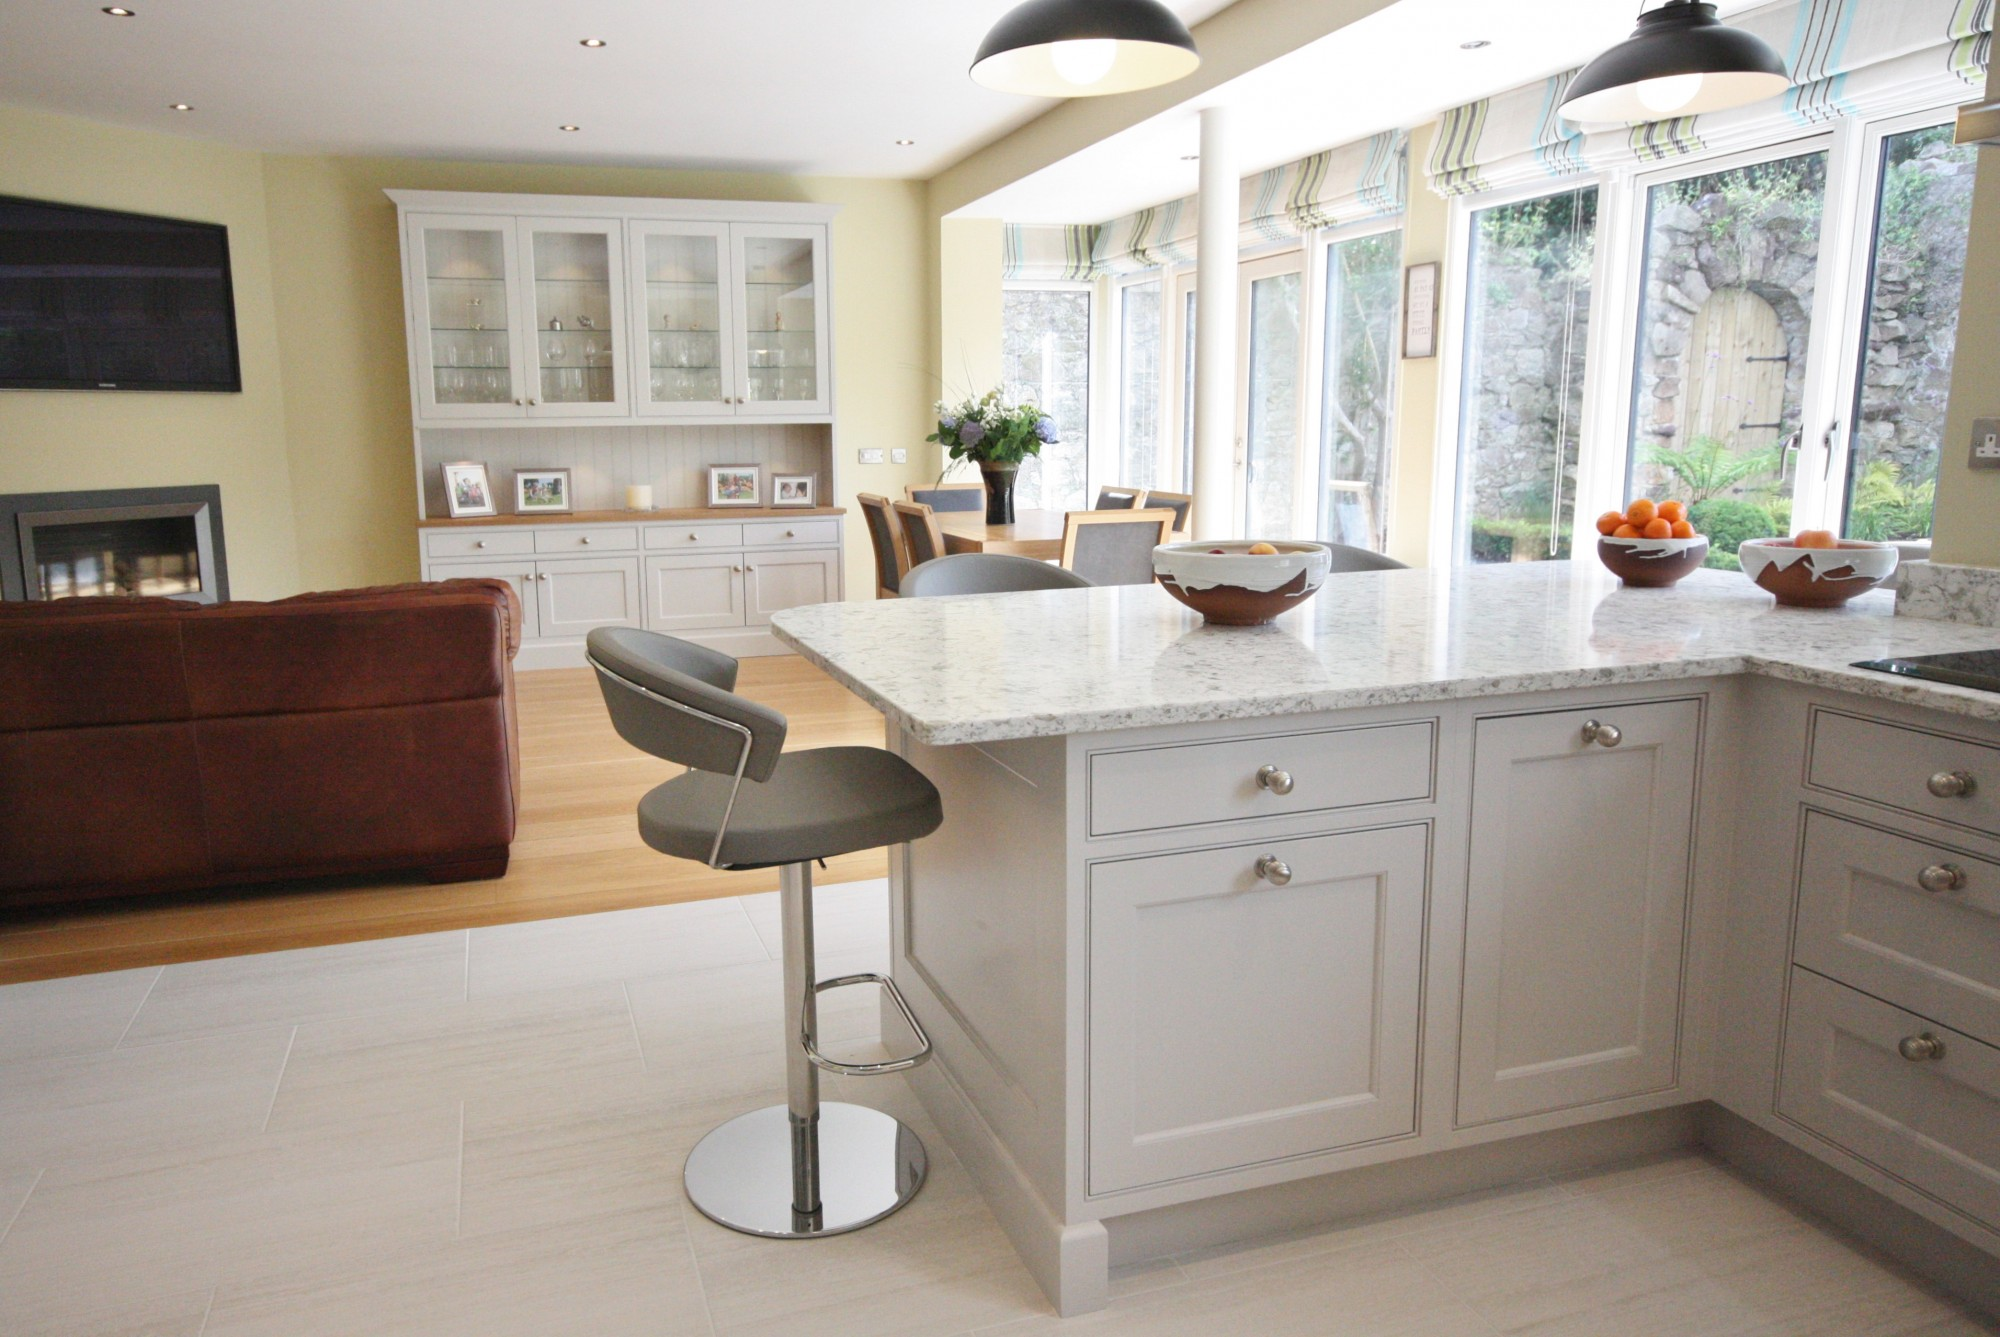 kitchen design wicklow enigma design 187 dm inframe painted bespoke kitchen 429